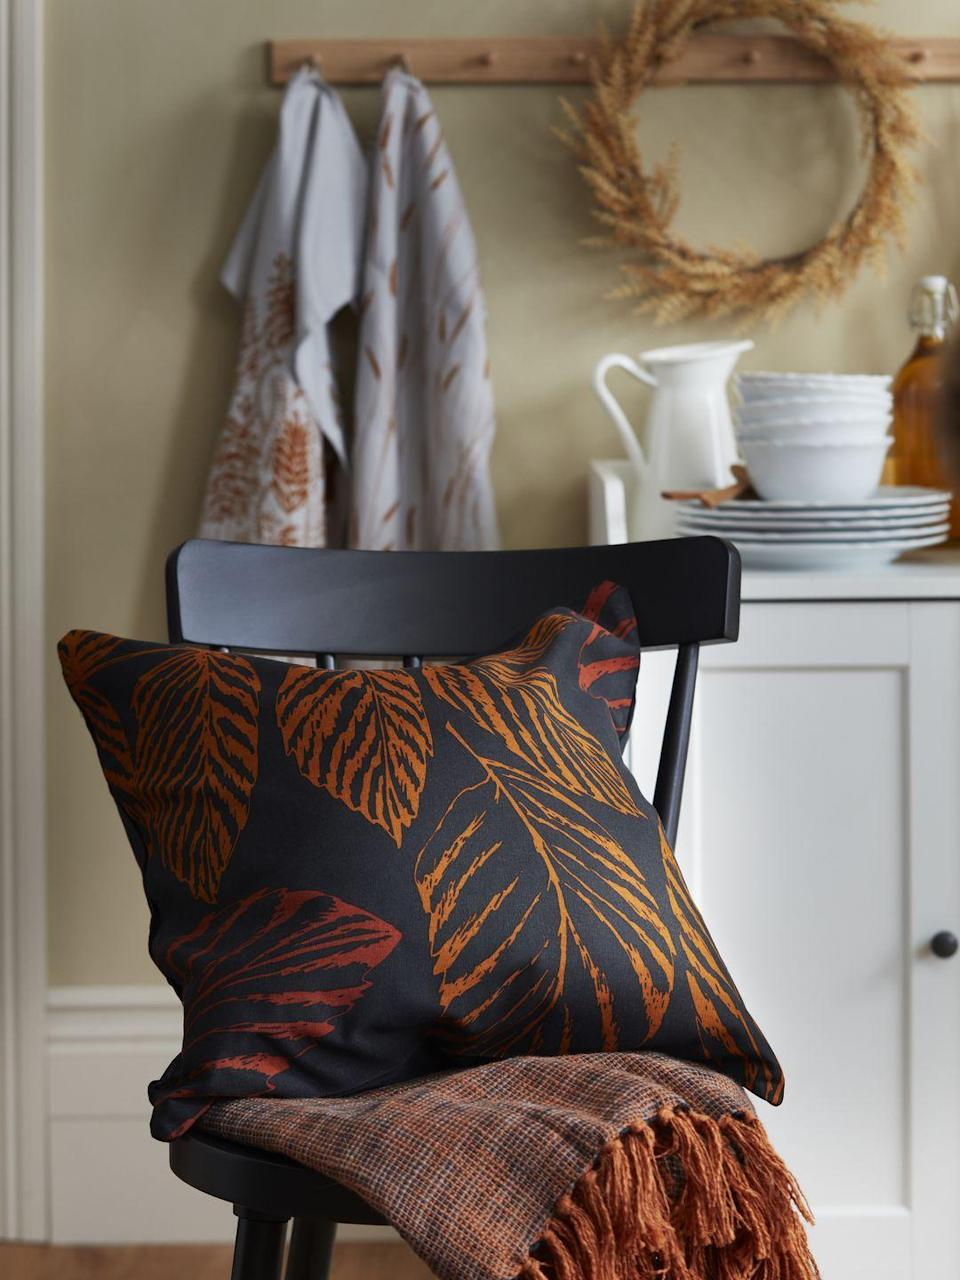 """<p>As part of the Global Influences transition trend, you'll discover cushion covers and cosy blankets in a host of autumnal hues. Cold days at <a href=""""https://www.countryliving.com/uk/homes-interiors/property/a37439178/home-mistakes-burglaries/"""" rel=""""nofollow noopener"""" target=""""_blank"""" data-ylk=""""slk:home"""" class=""""link rapid-noclick-resp"""">home</a> just got an upgrade...</p>"""